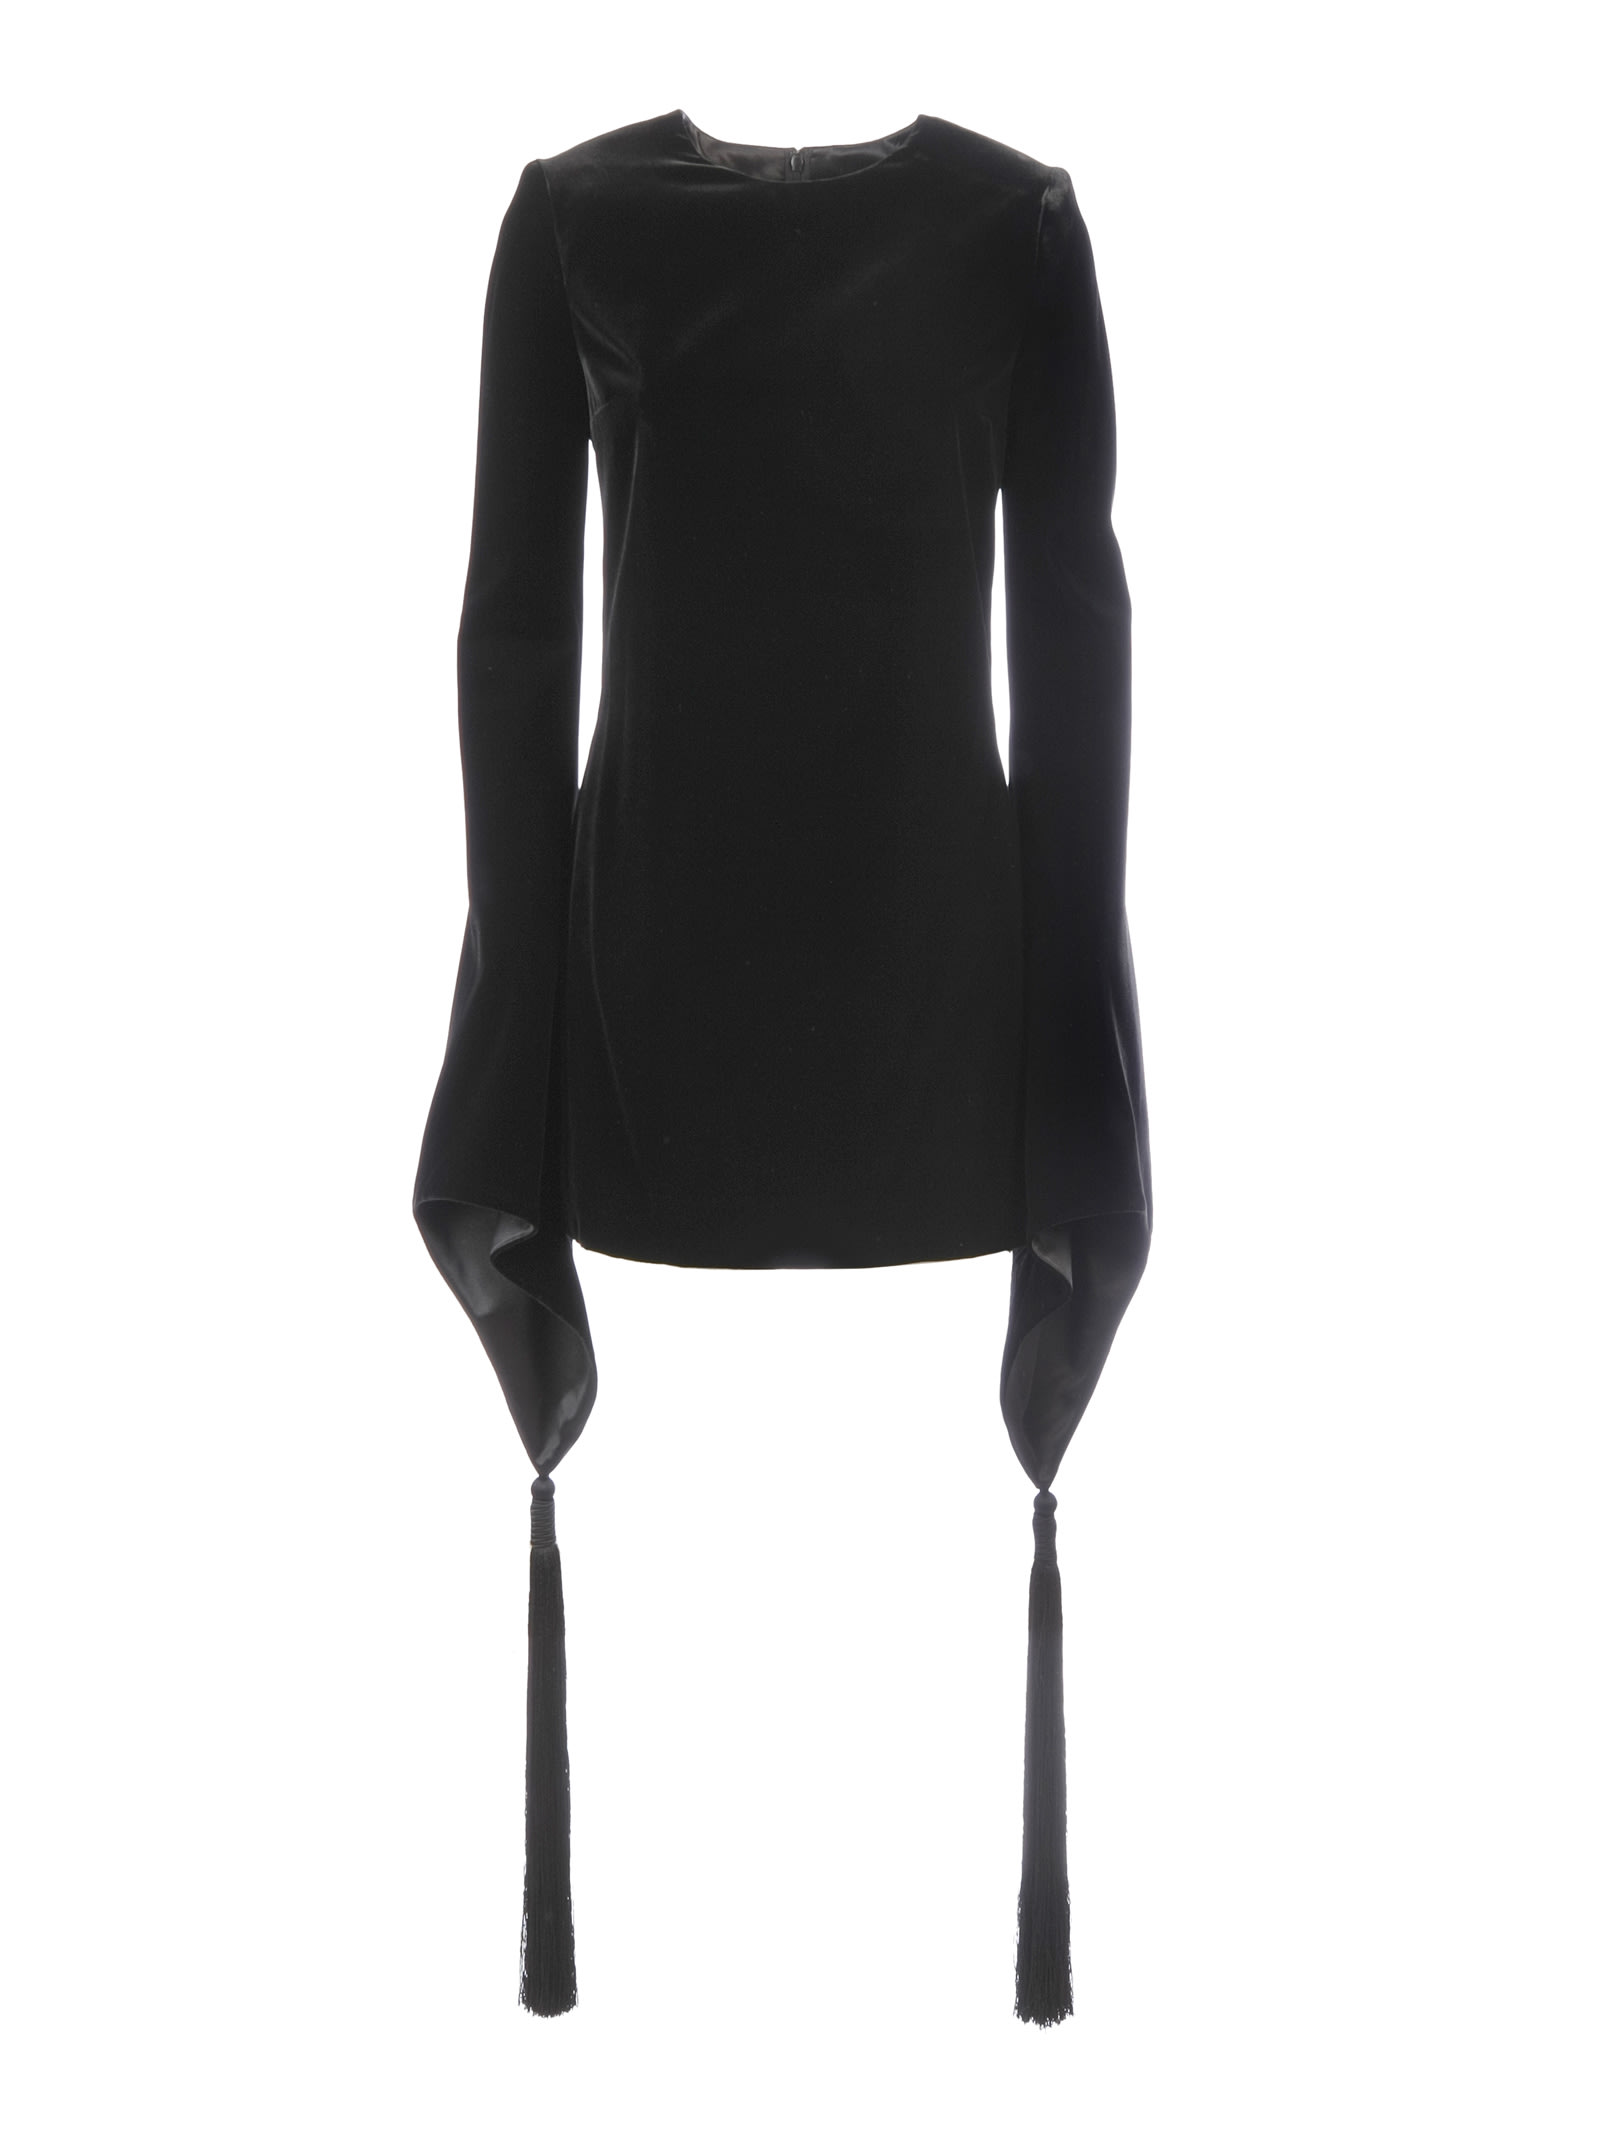 Saint Laurent Asymmetric Cuffs Dress